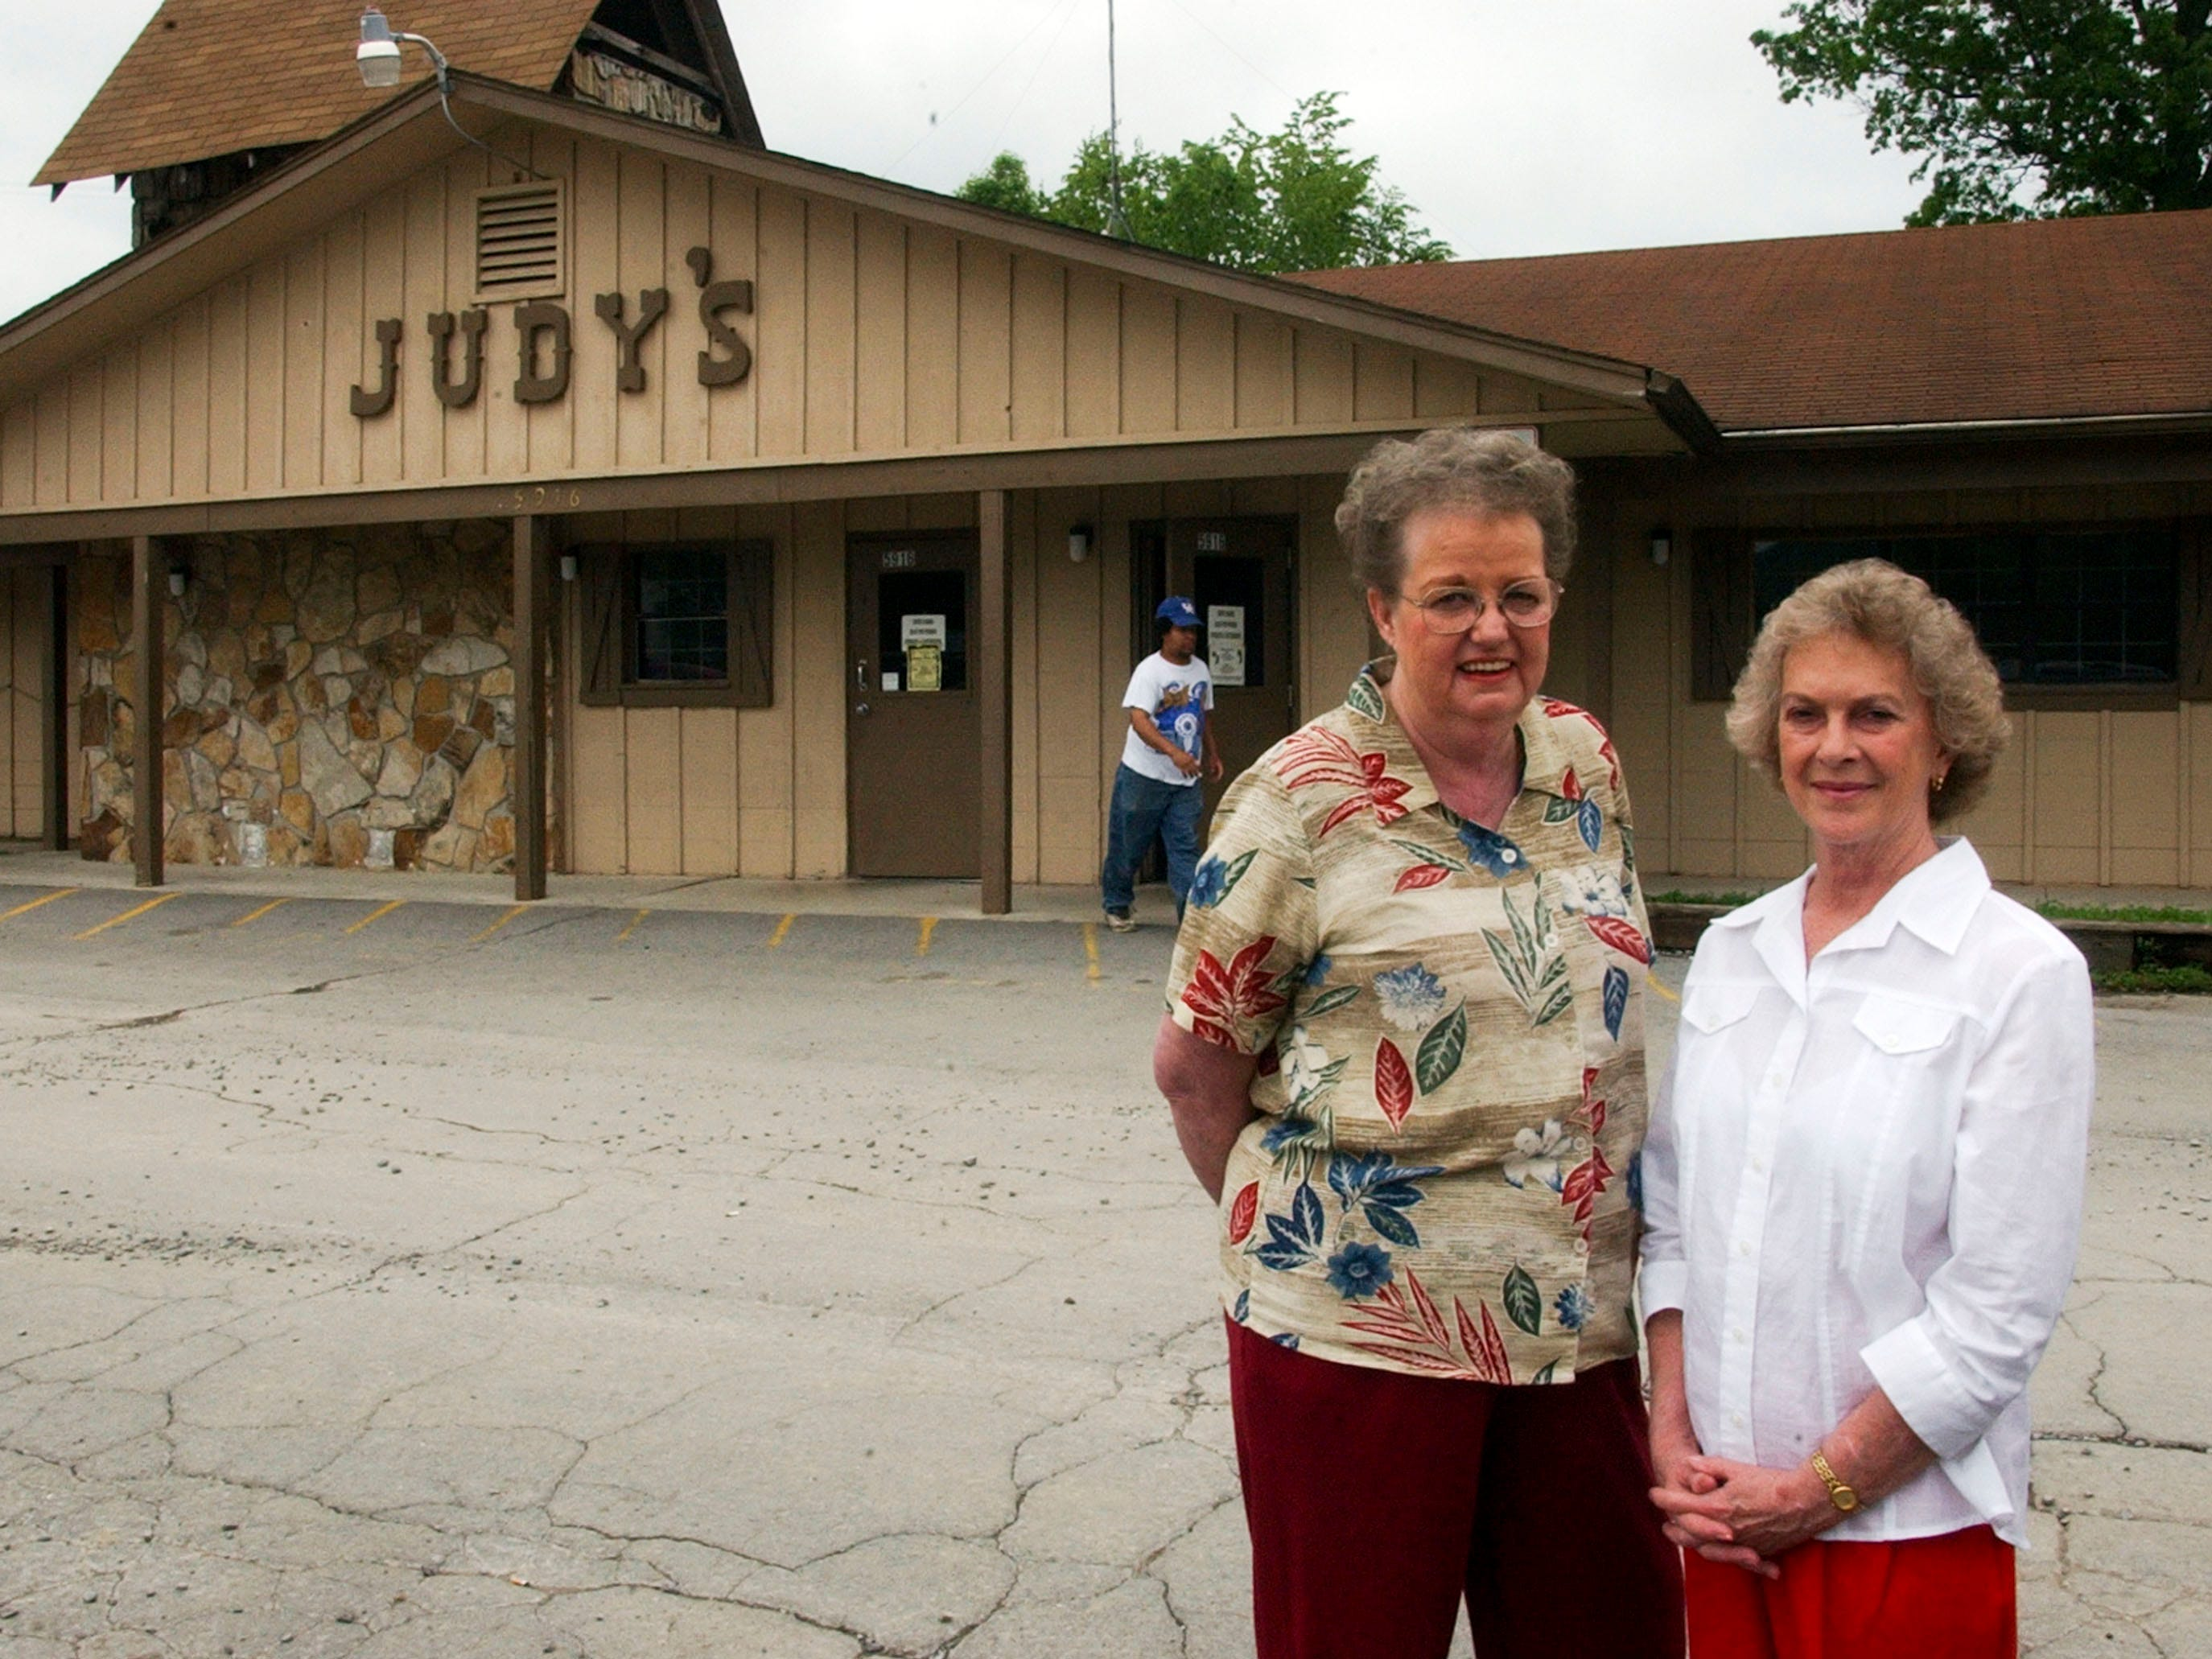 Judy's Restaurant and Nightclub owner Jessie Frye and Judy Collins in 2001.